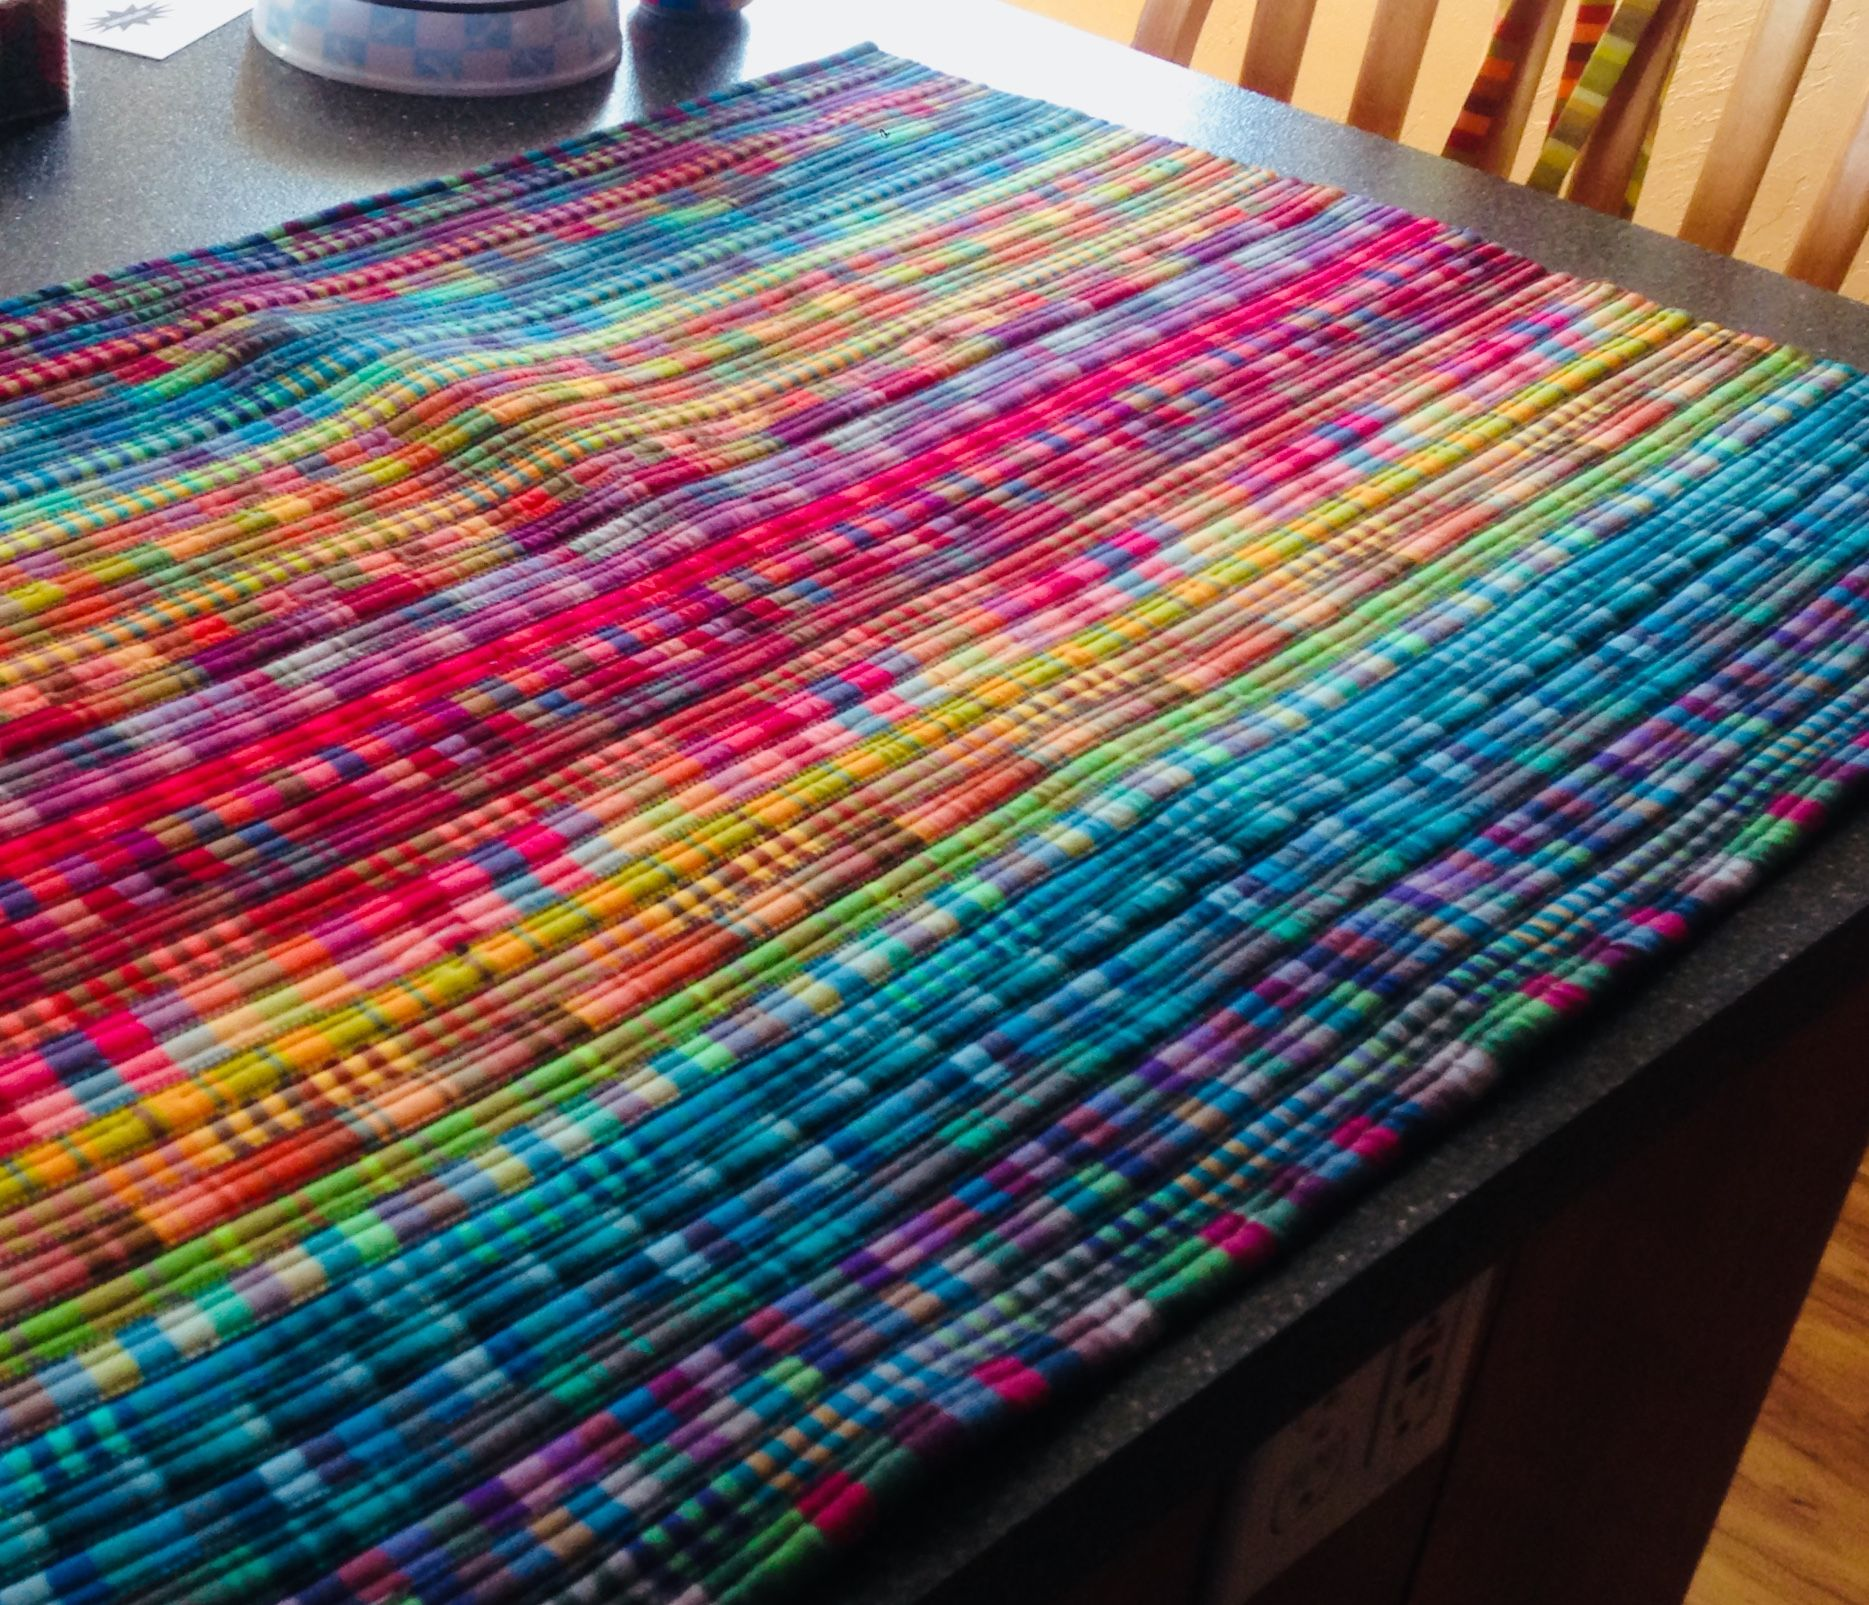 Jelly Roll Rug Sewing Rugs Sewing Projects Handmade Rugs